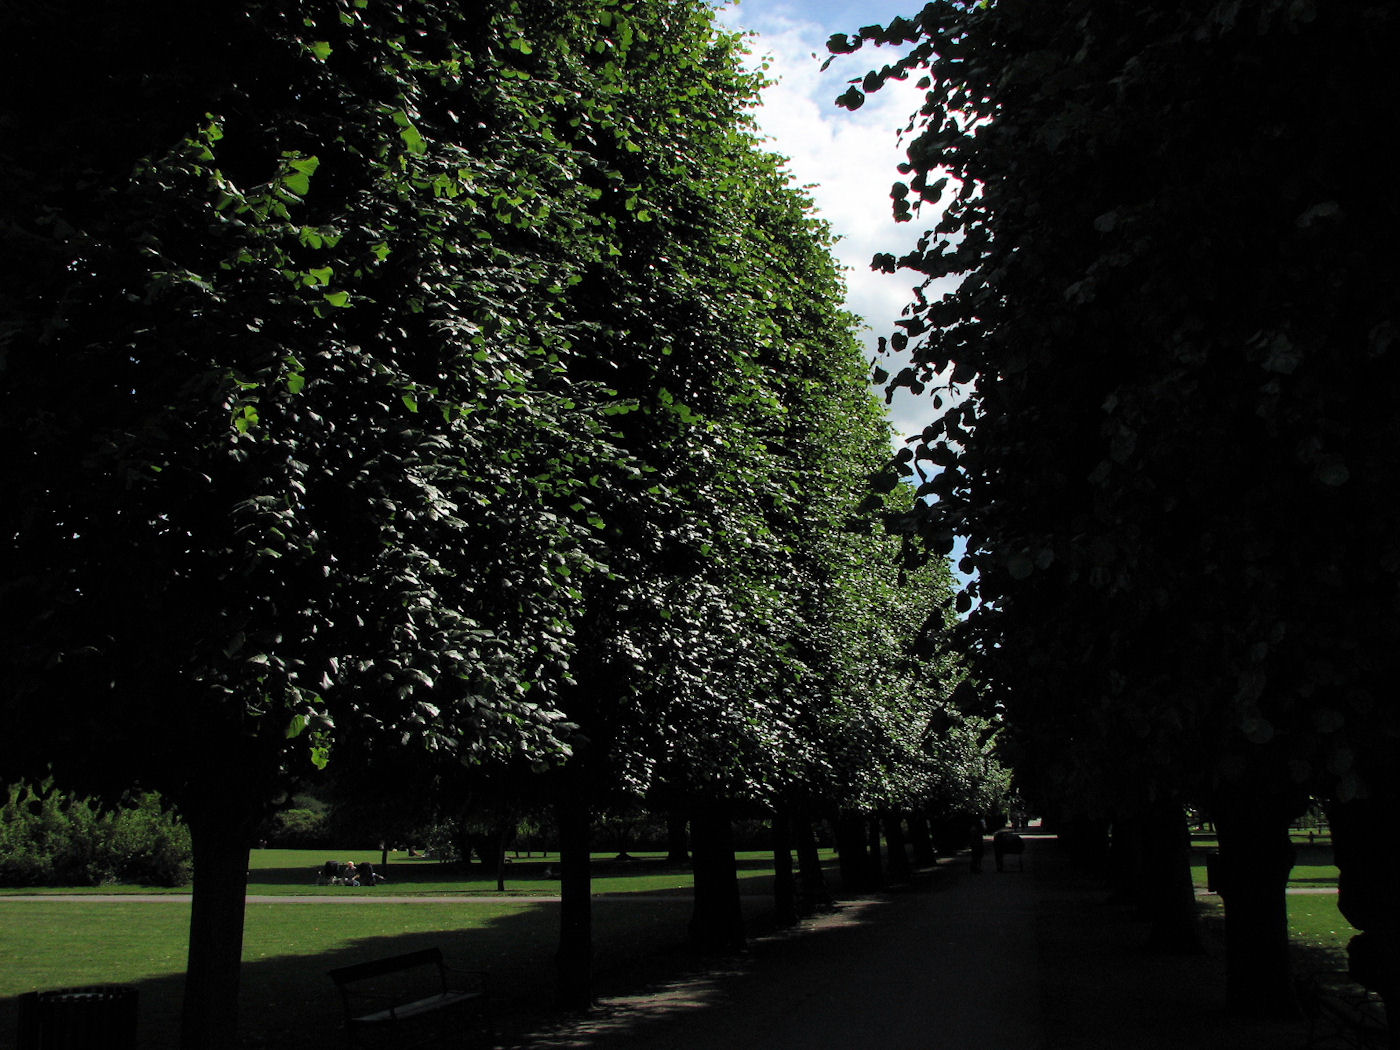 Tree-lined paths at Kongens Have